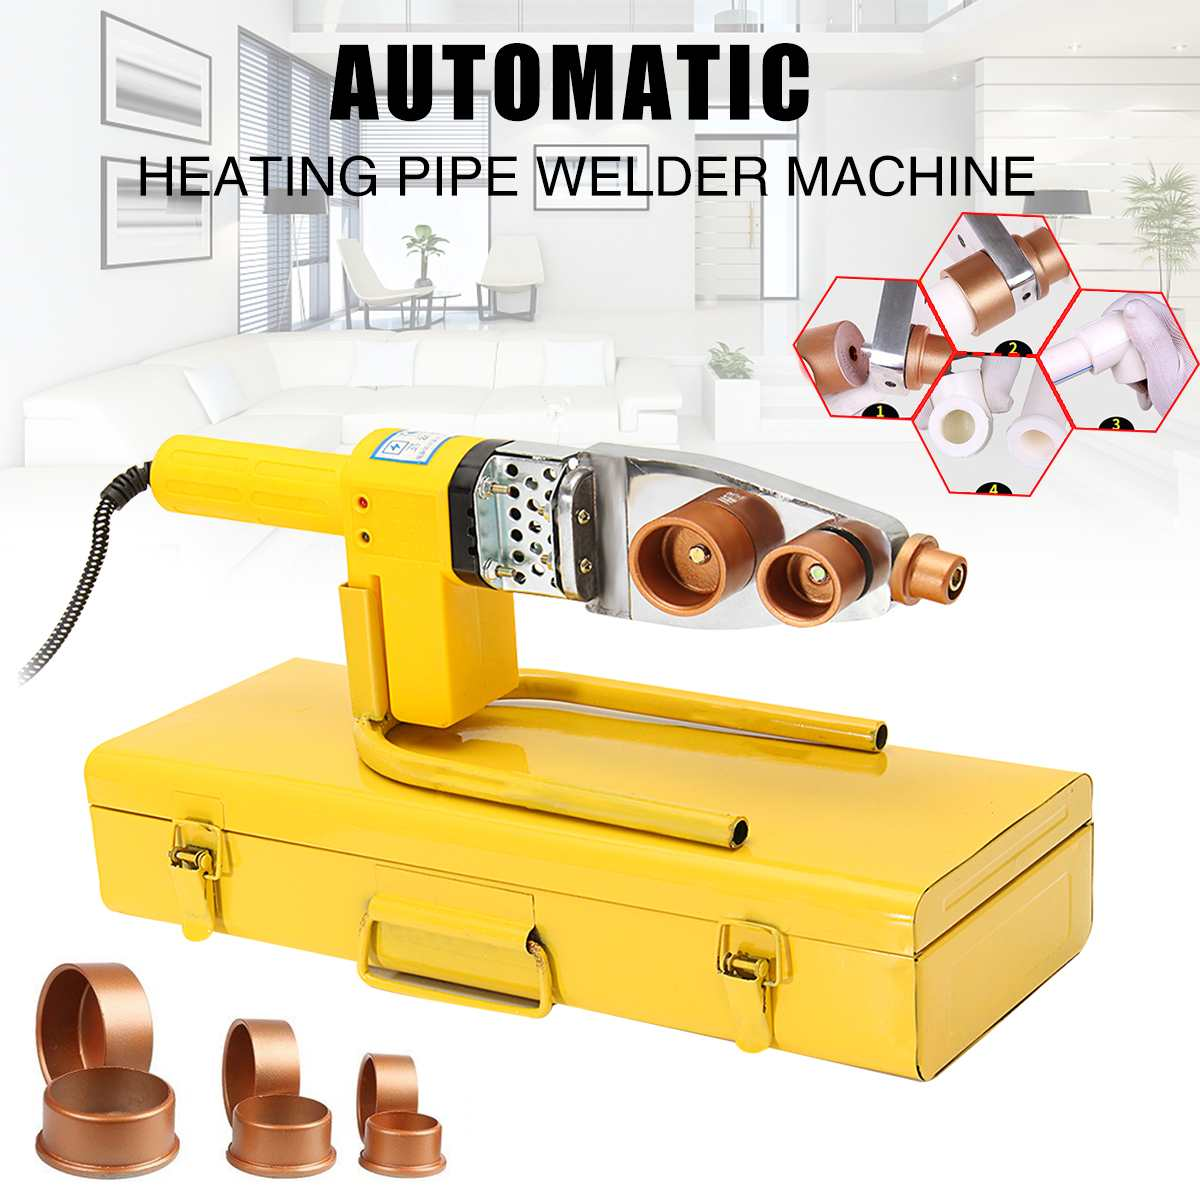 220V Automatic Heating Tube Welding Machine PPR PE PP Pipe Welder For Plastic Pipes Electric Welding Tool 20mm 25mm 32mm